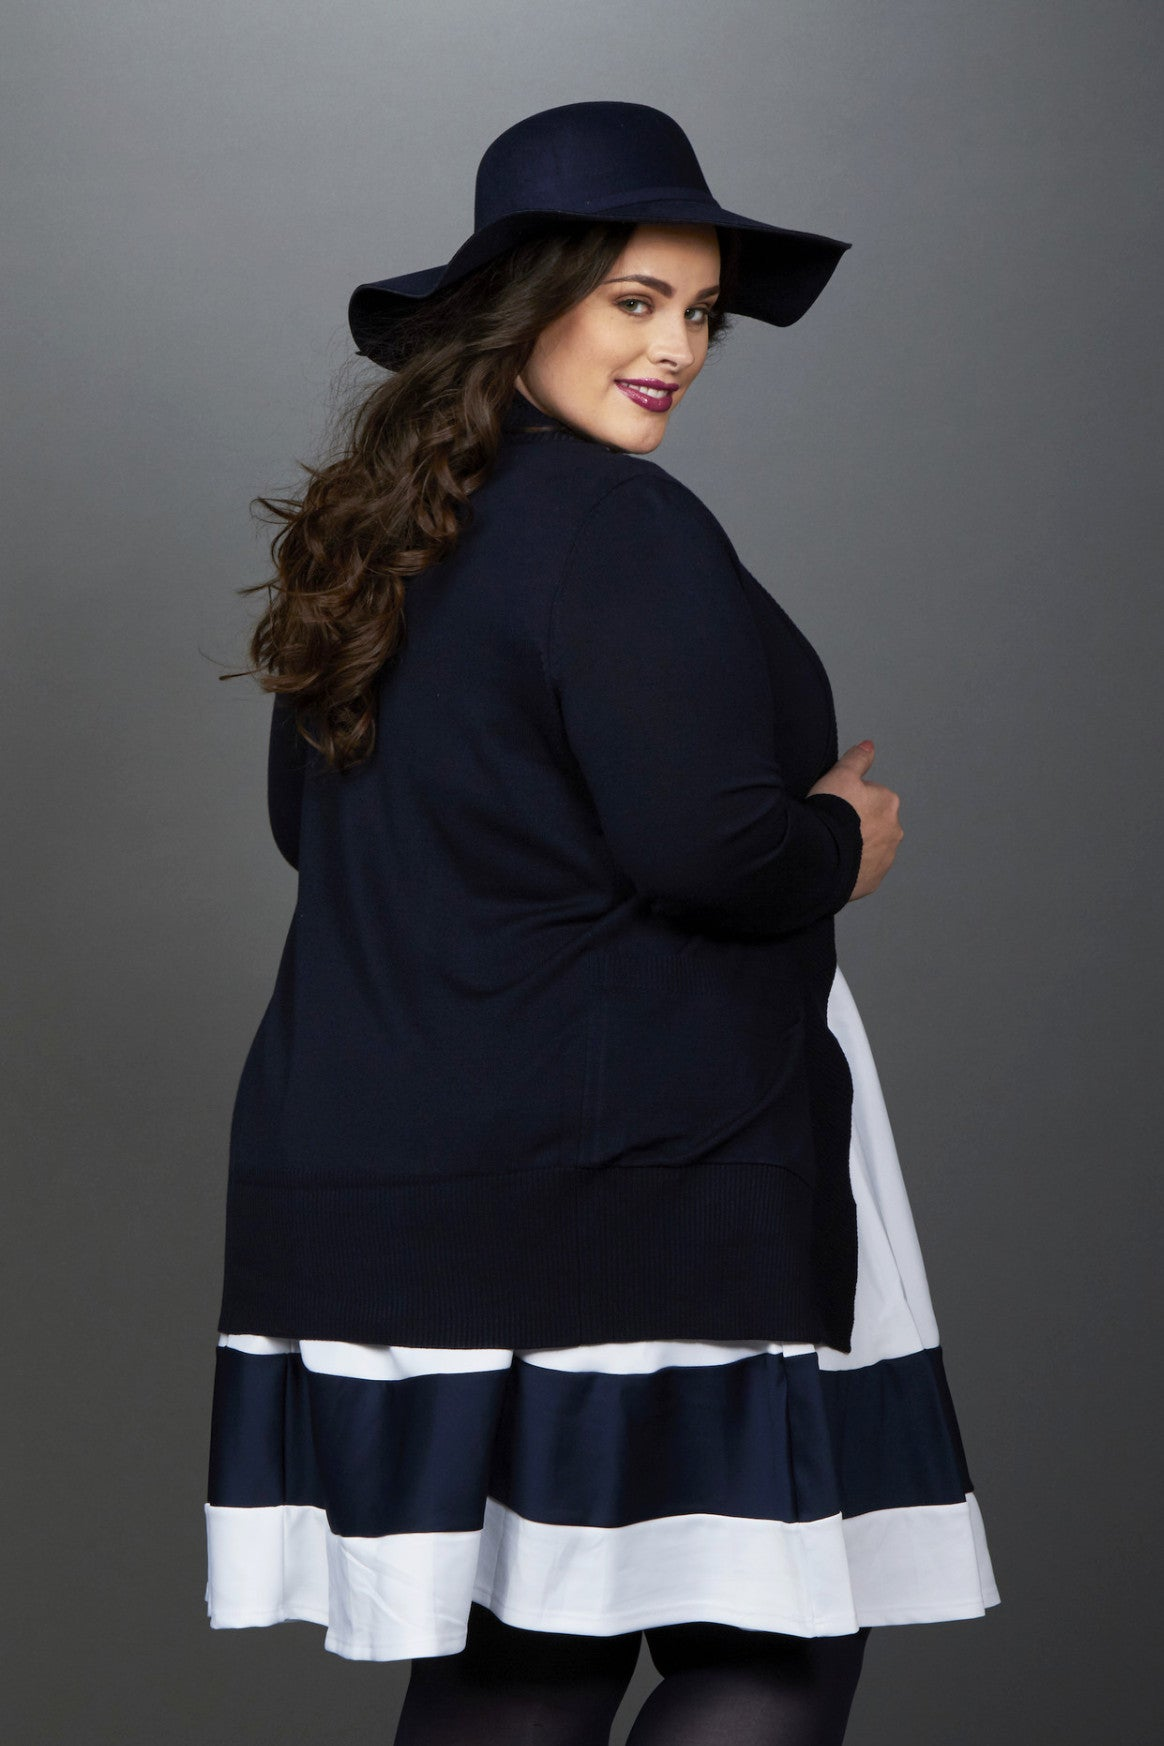 Plus Size Clothing for Women - You, Me, & A Cup of Tea Cardi - Navy - DO NOT MAKE LIVE - Society+ - Society Plus - Buy Online Now! - 3